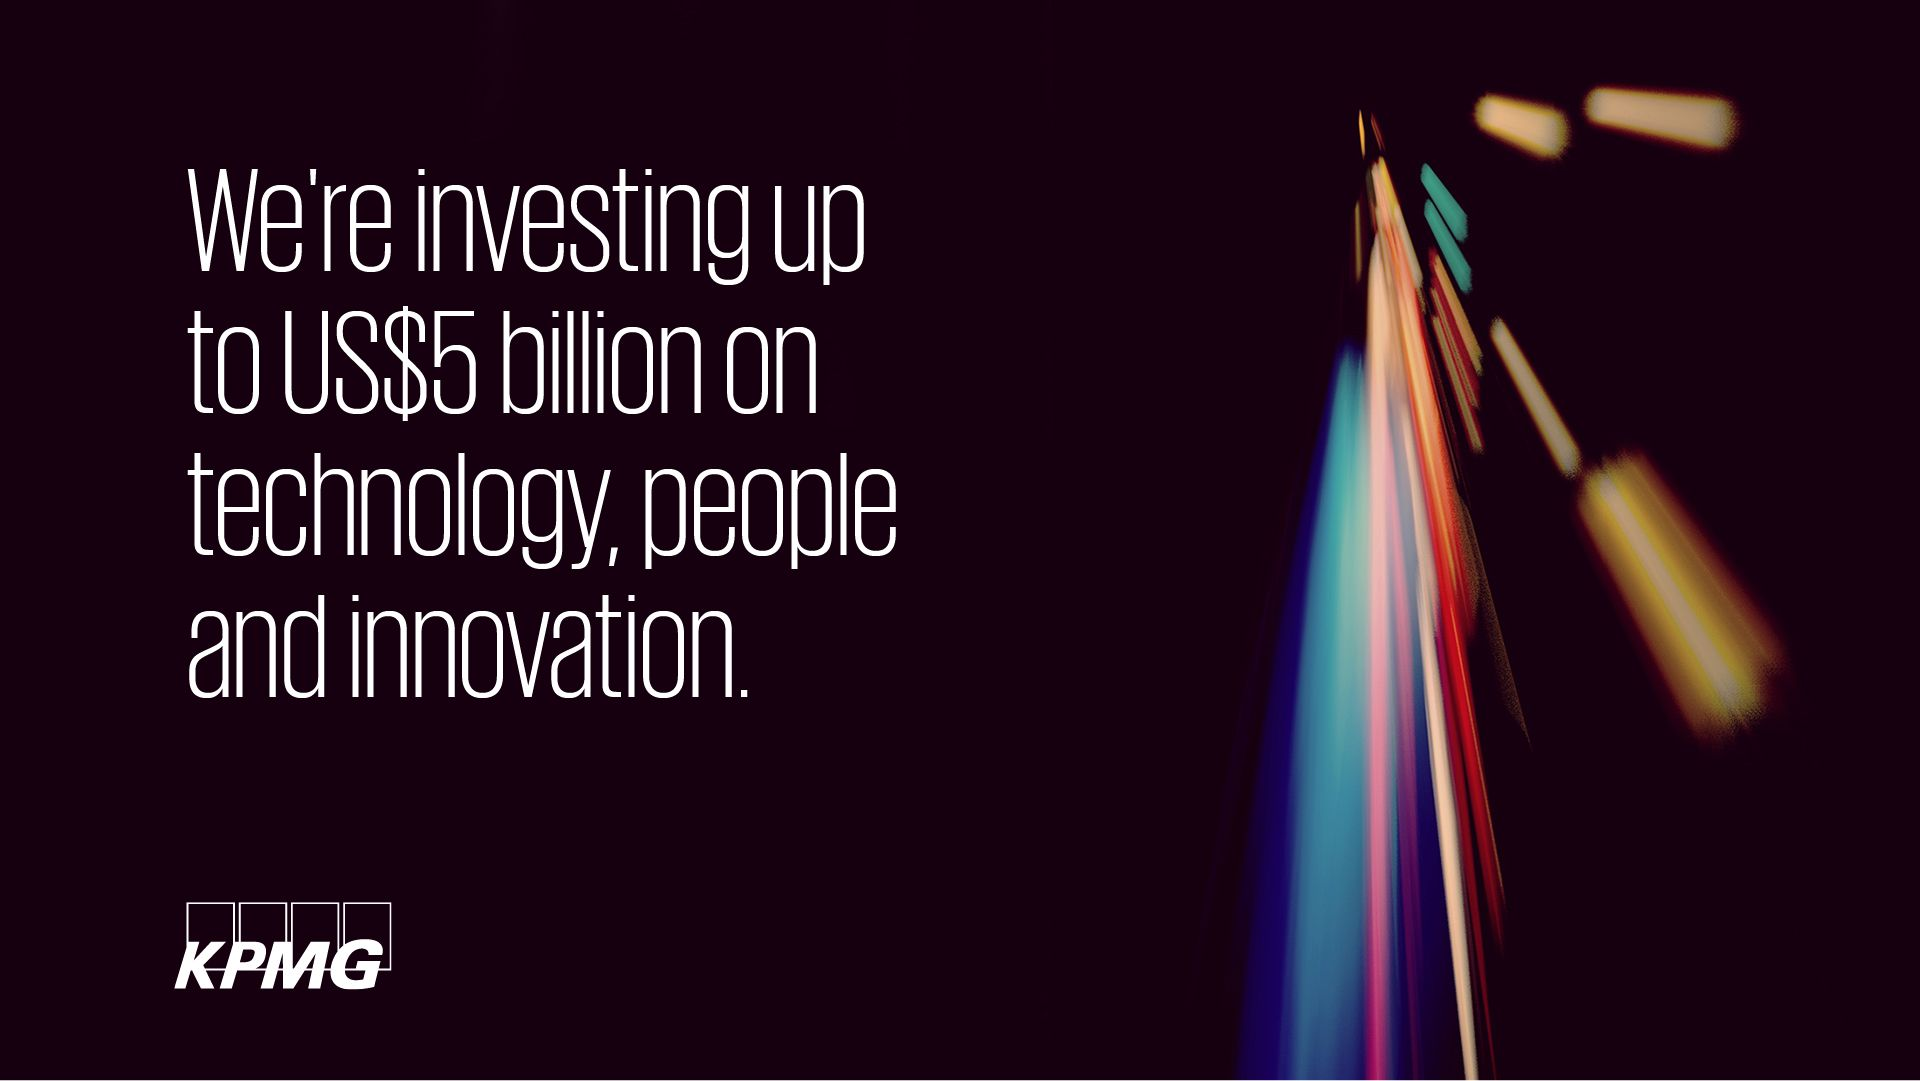 KPMG invests in technology, people and innovation